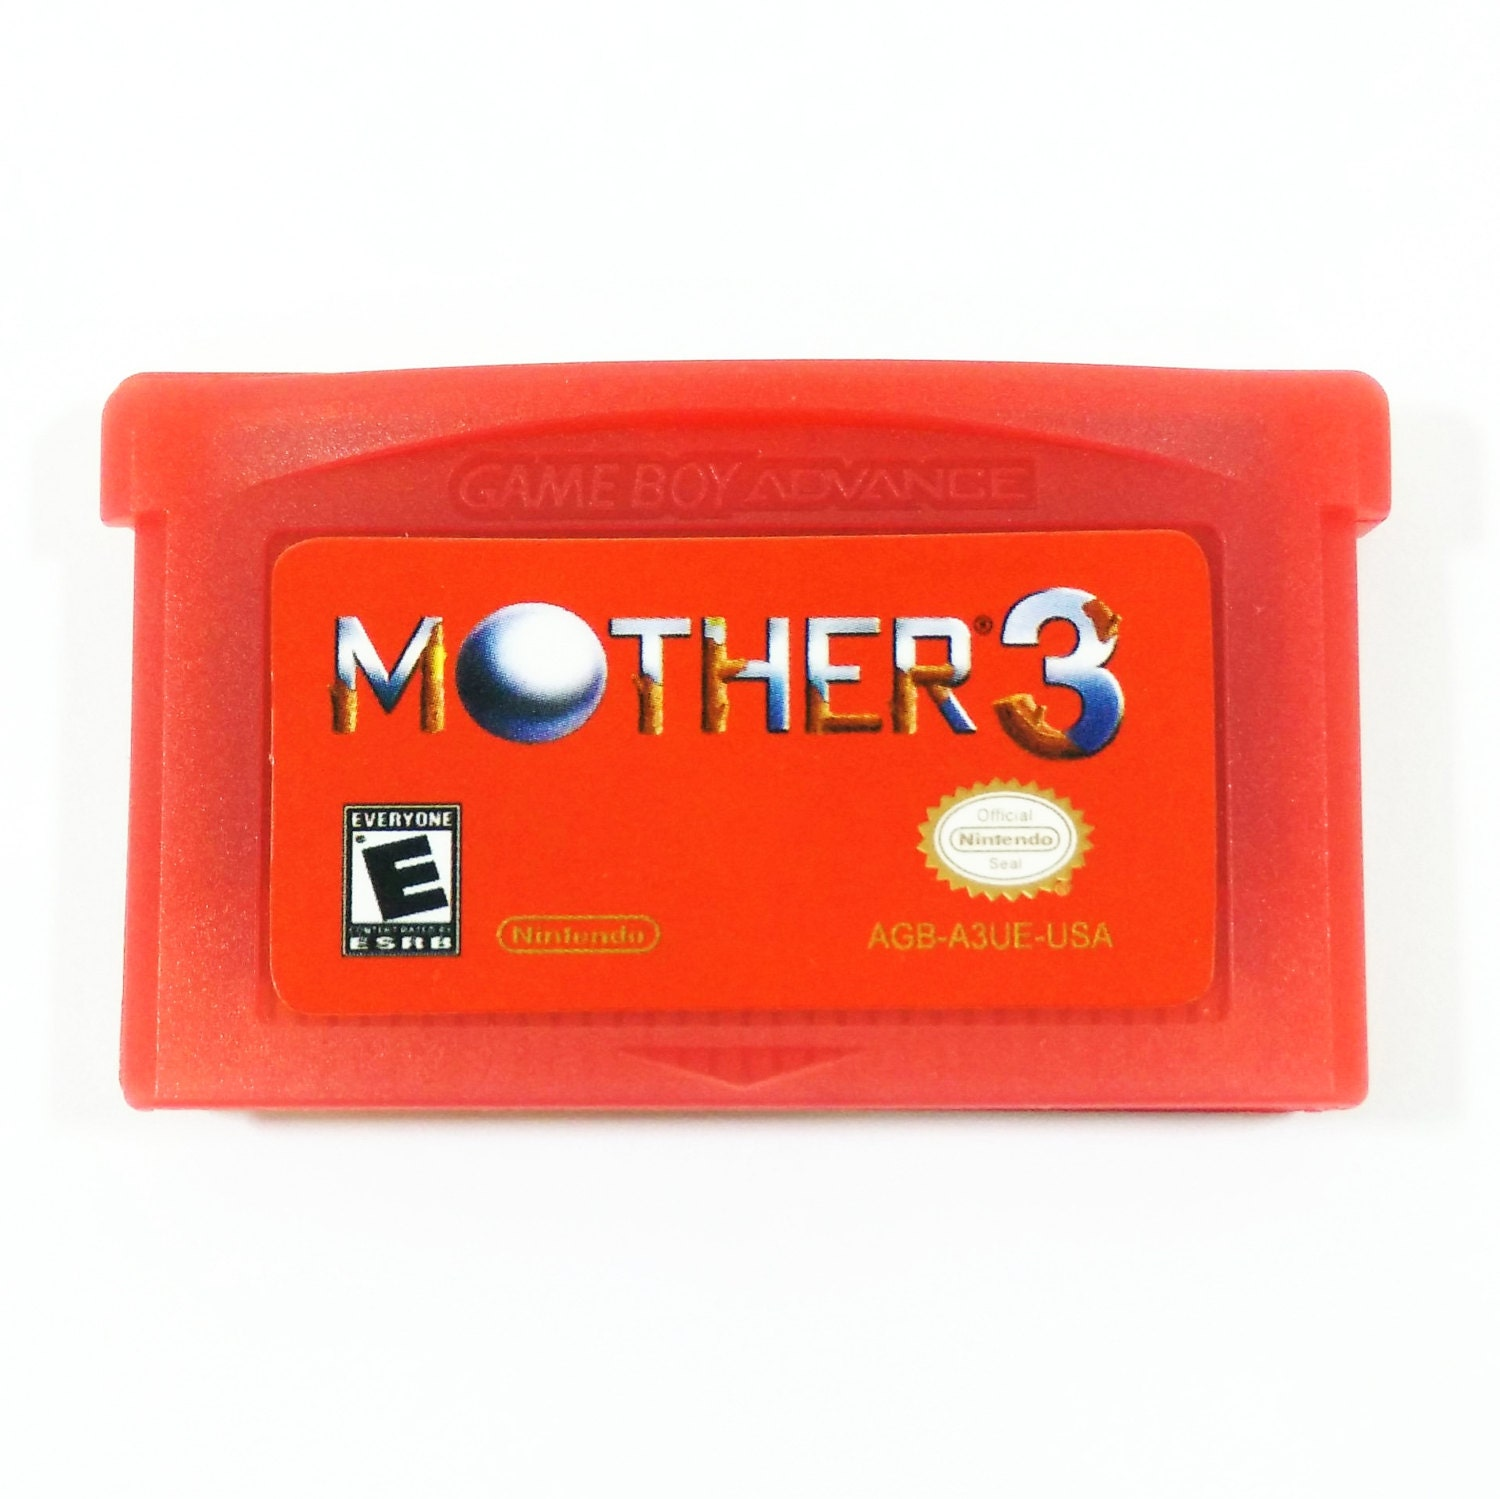 Mother 3 Gba Earthbound 2 English Red Cartridge Fan Etsy